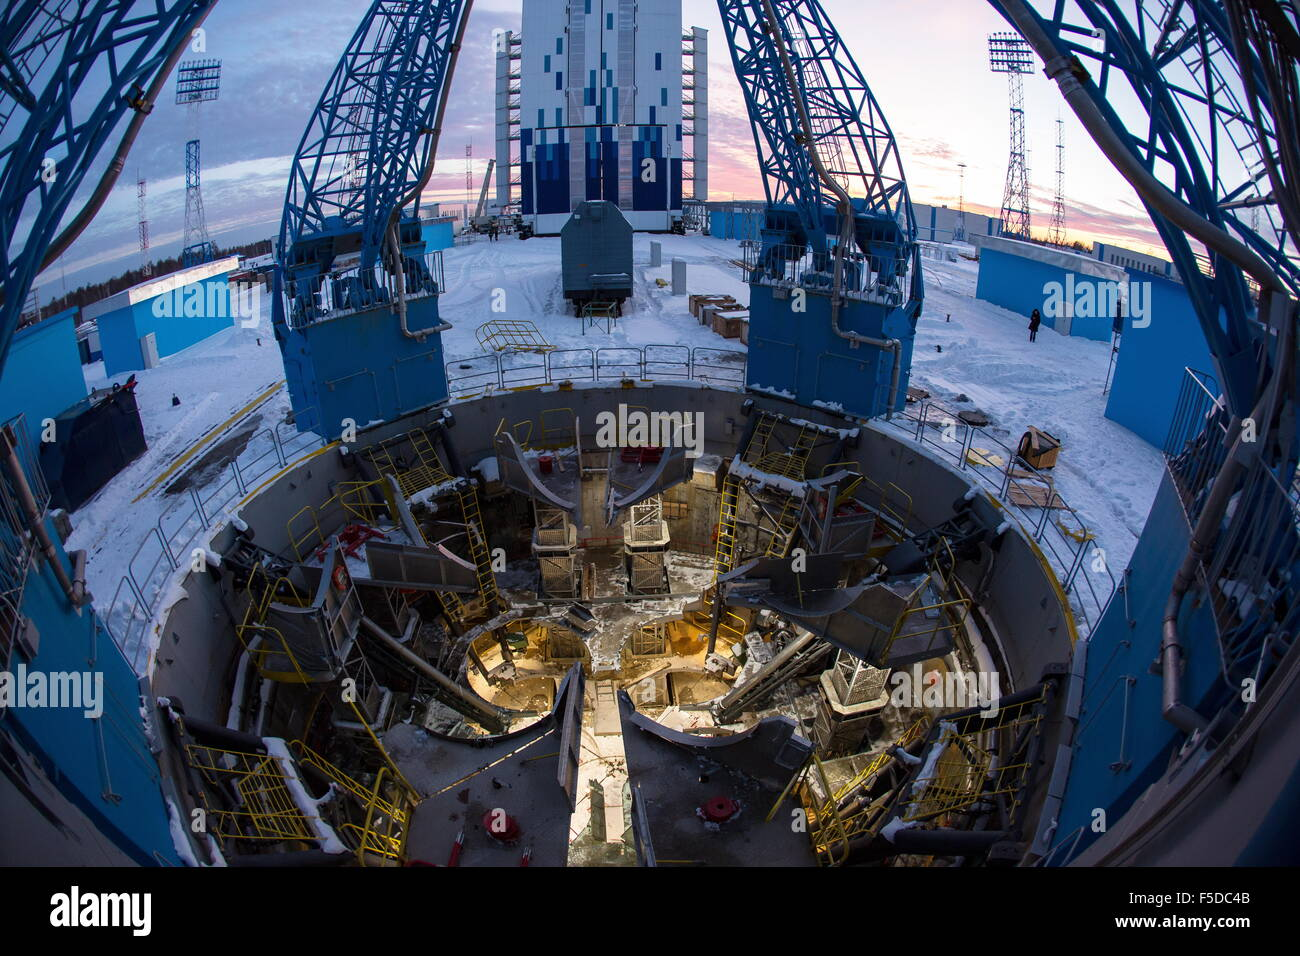 Amur Region, Russia. 2nd Nov, 2015. A view of a launch pad at Russia's Vostochny Cosmodrome. Several corruption - Stock Image